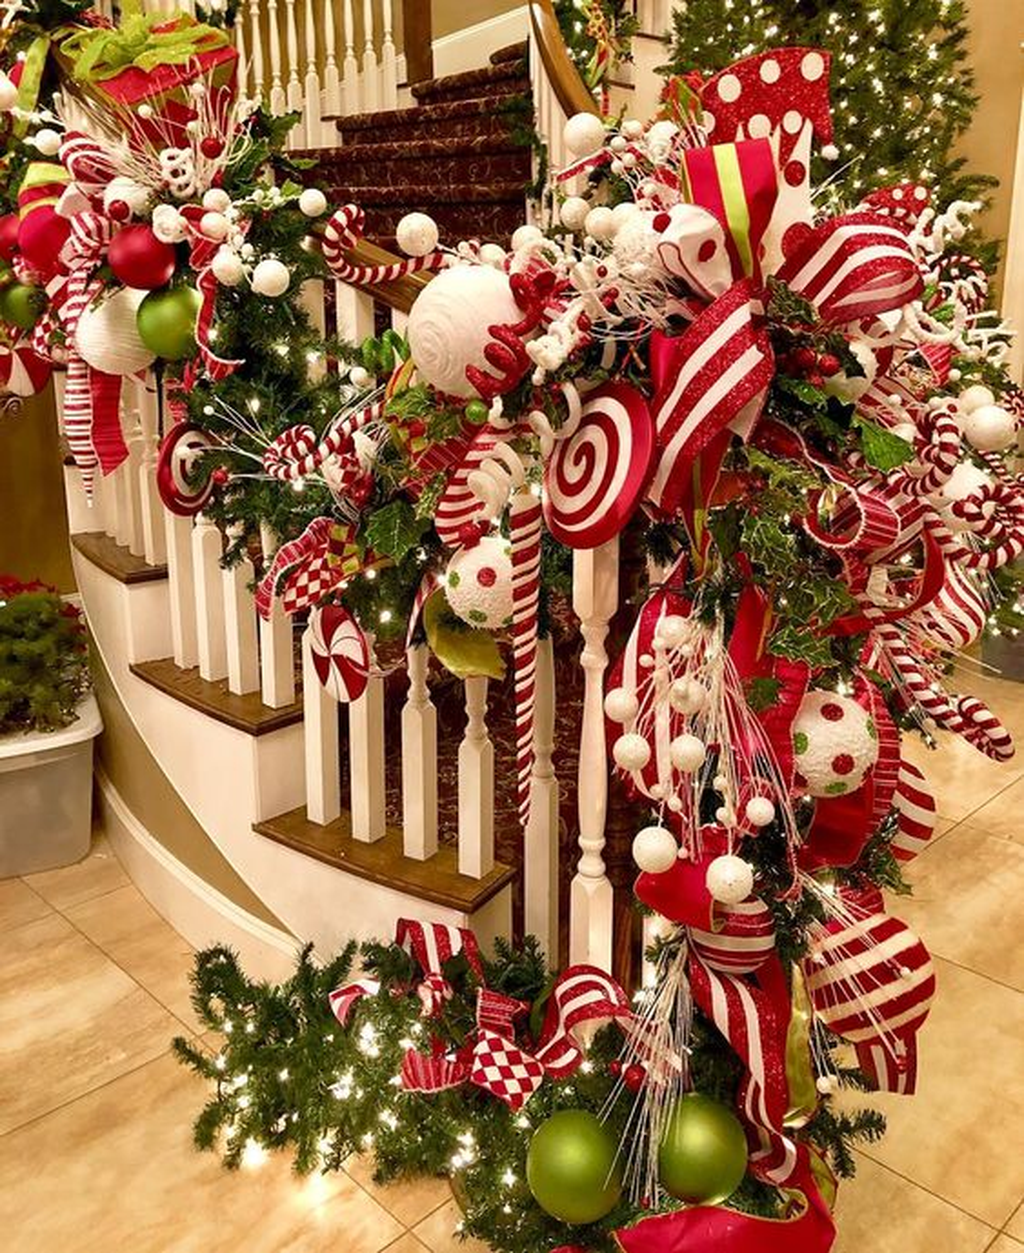 32 Stunning Diy Christmas Theme Home Decorations Christmas Stairs Decorations Christmas Garland Grinch Christmas Decorations